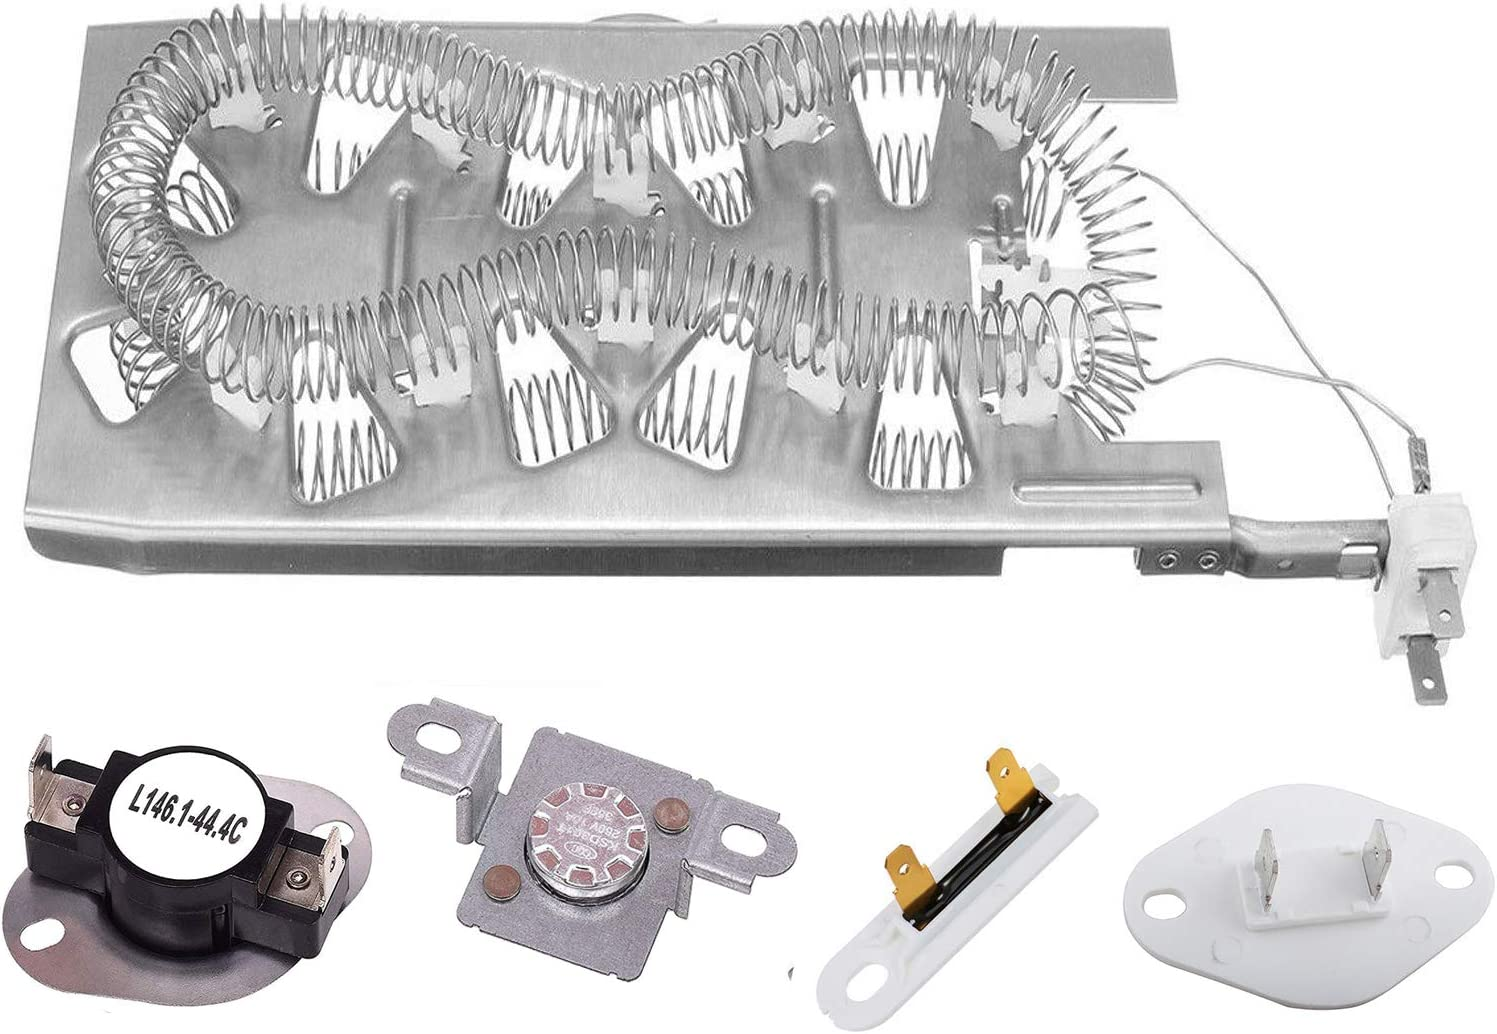 3387747 & 279973 & 3392519 & 8577274 Duet Dryer Heating Element Thermal Cut Off Kit with Thermistor & Thermal Fuse Compatible with Kenmore, Samsung, Whirlpool electric dryers